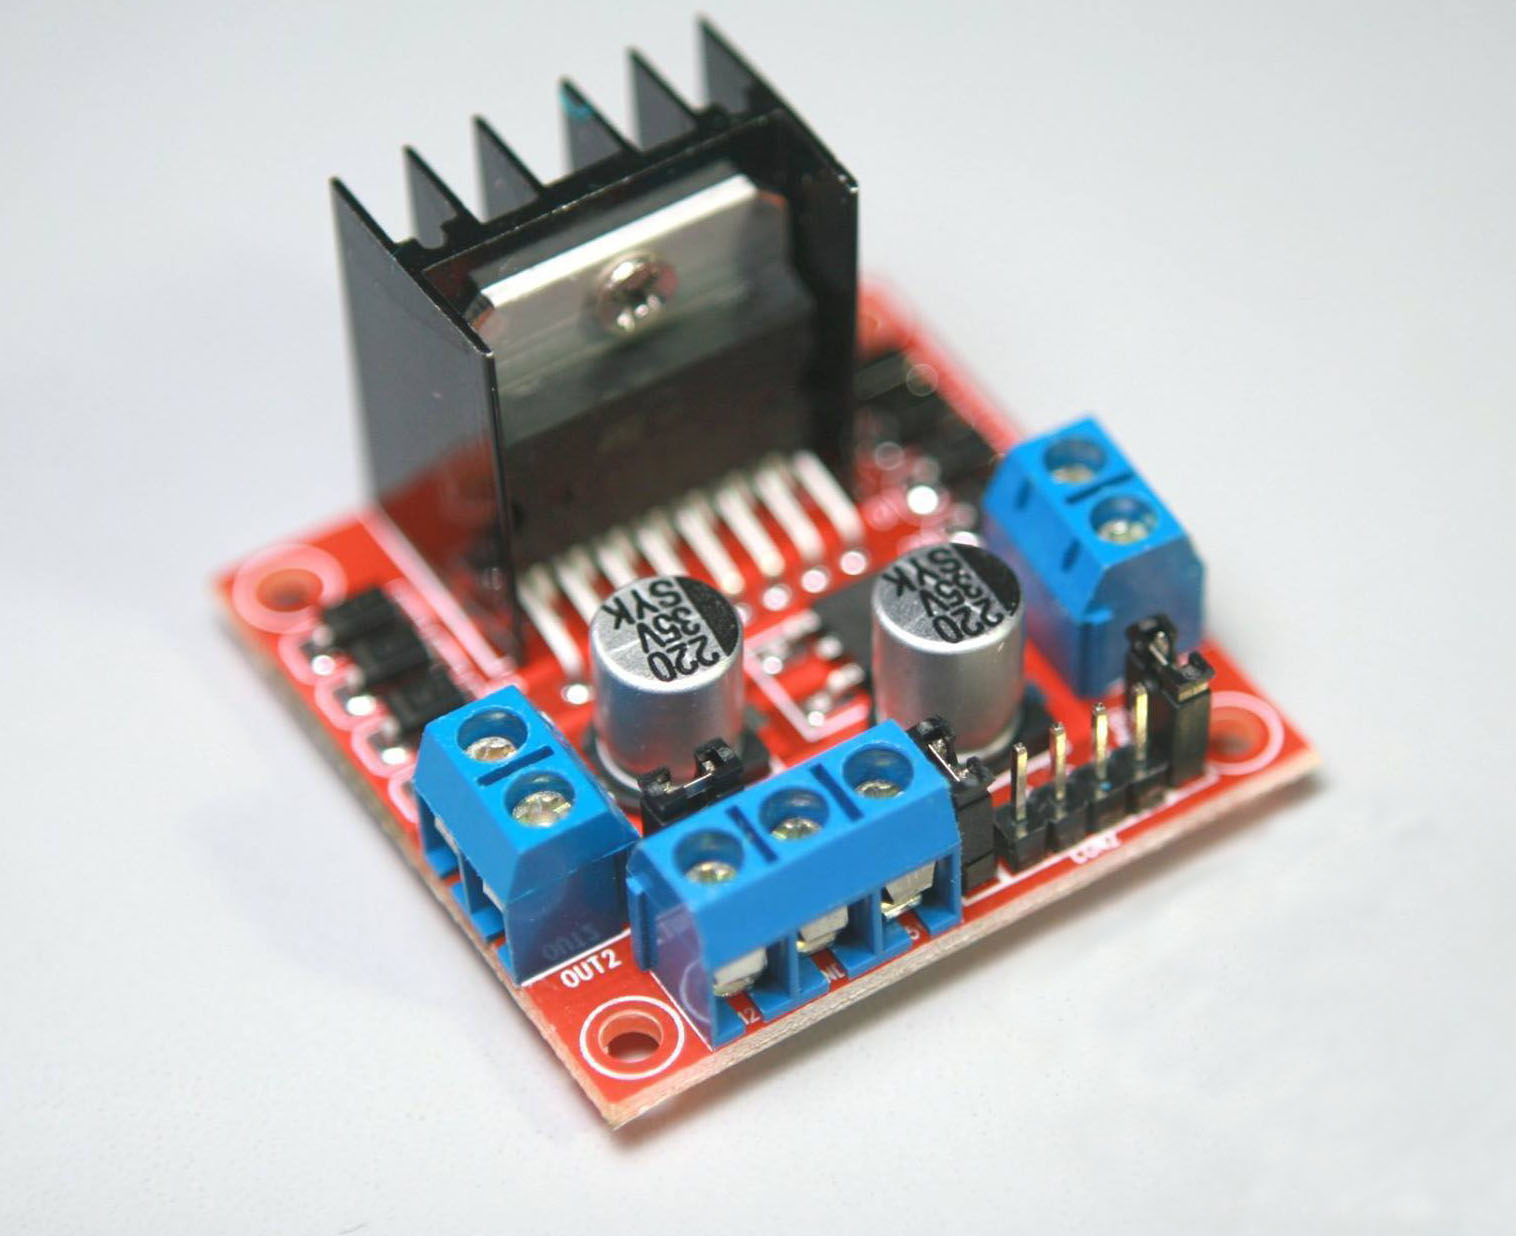 How To Use L298n Motor Driver Teach Me Microcontrollers Build An Hbridge Circuit